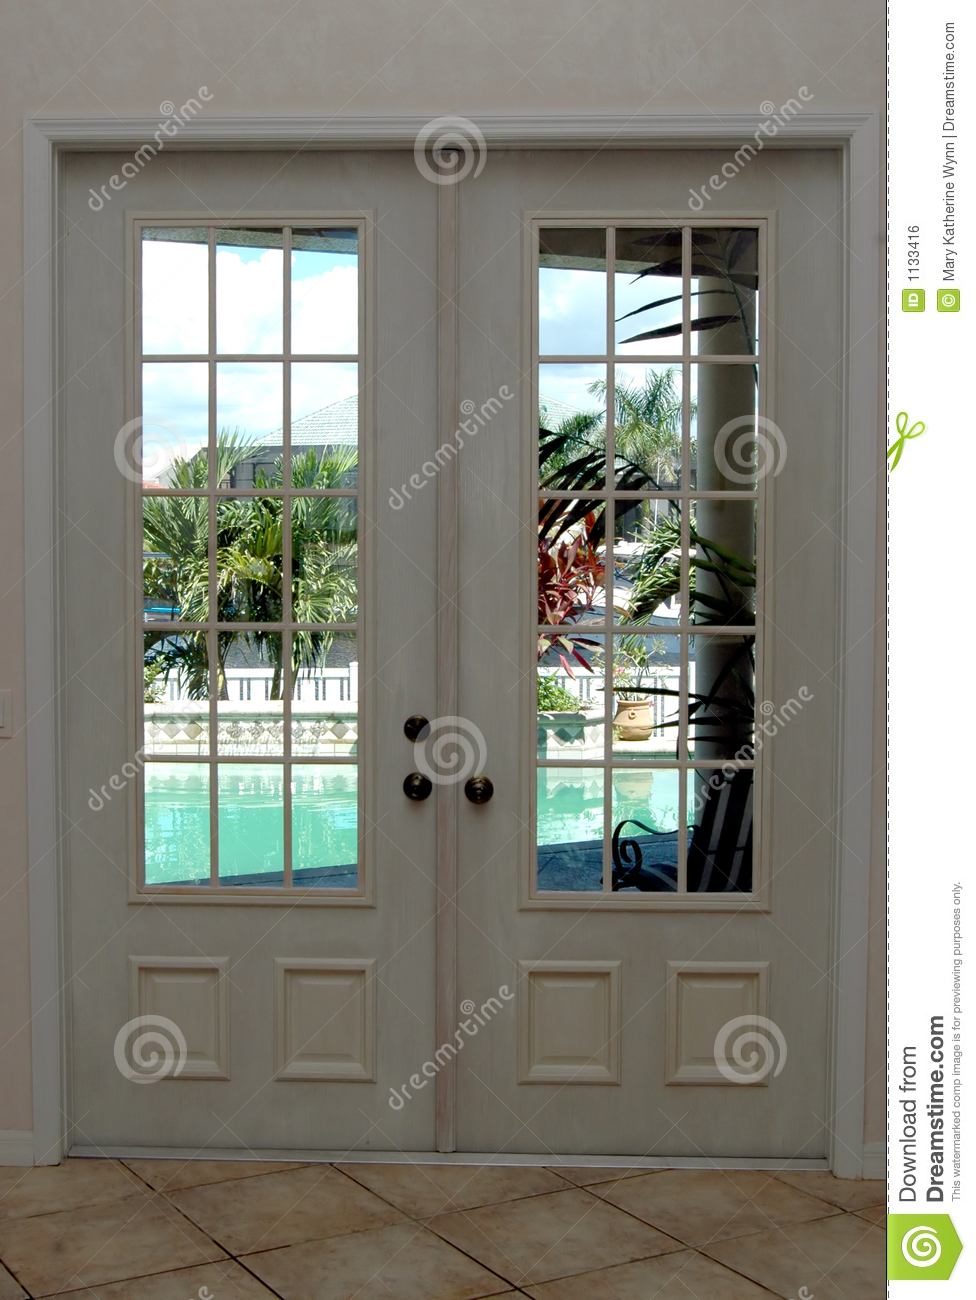 Chandelier Closed French Doors Royalty Free Stock Image - Image: 1133416